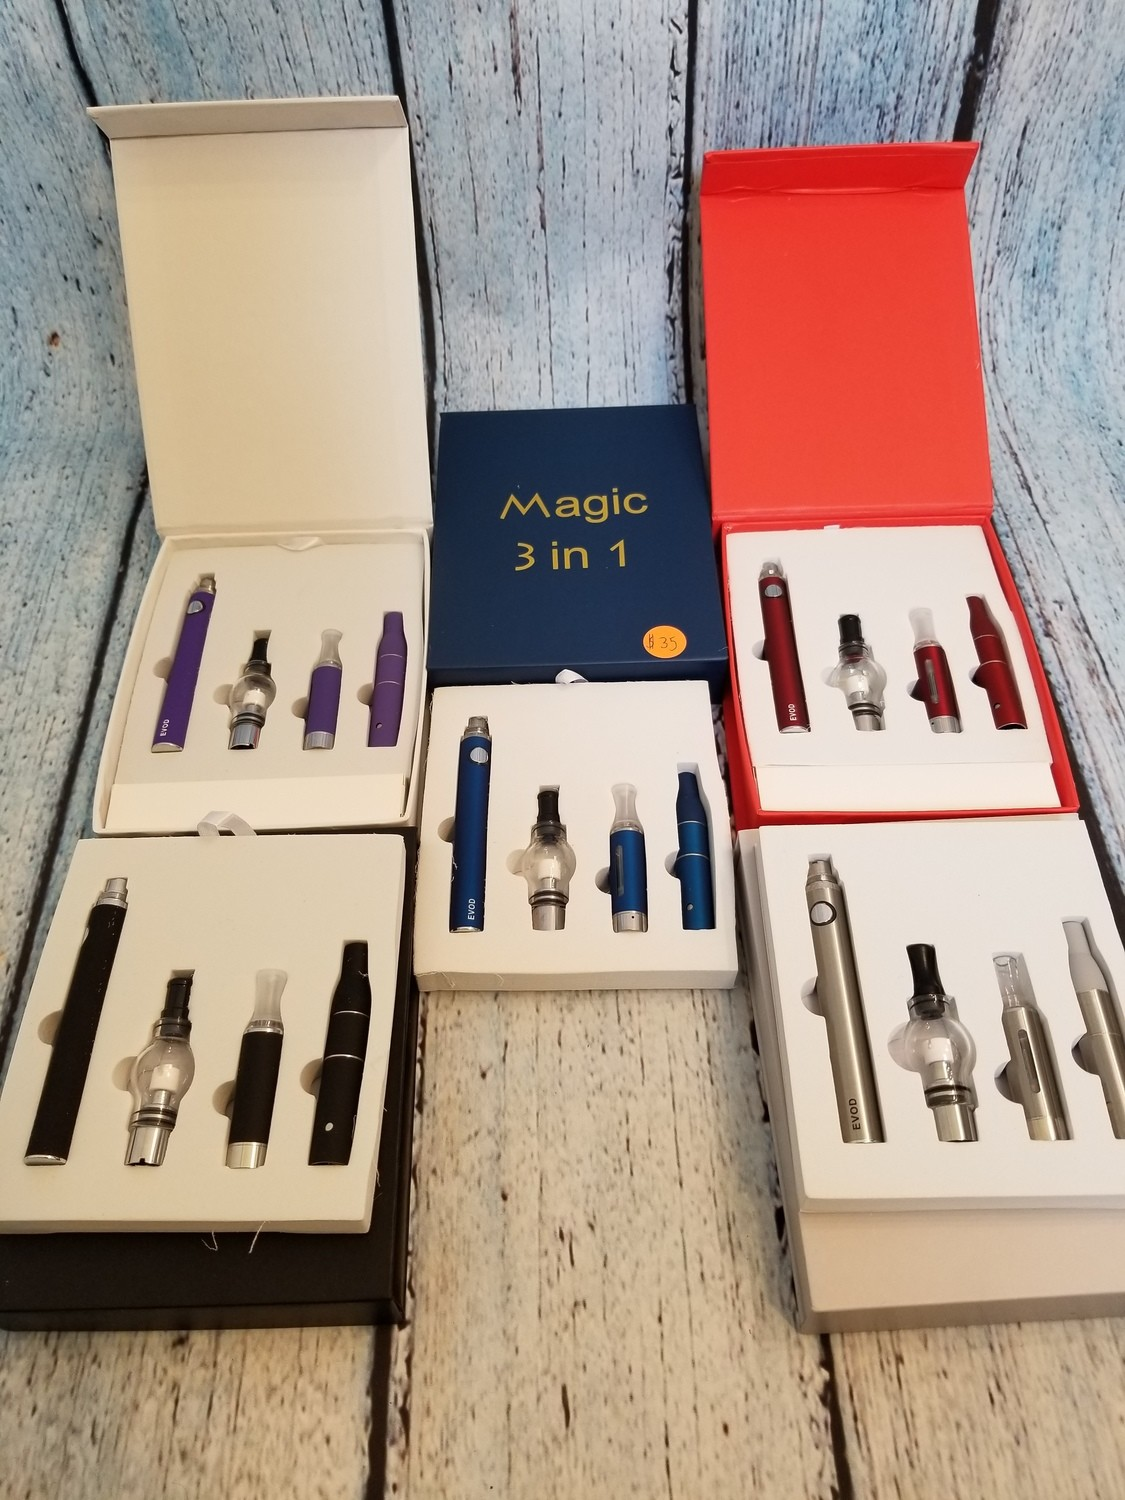 MAGIC 3 IN 1 VAPE PEN